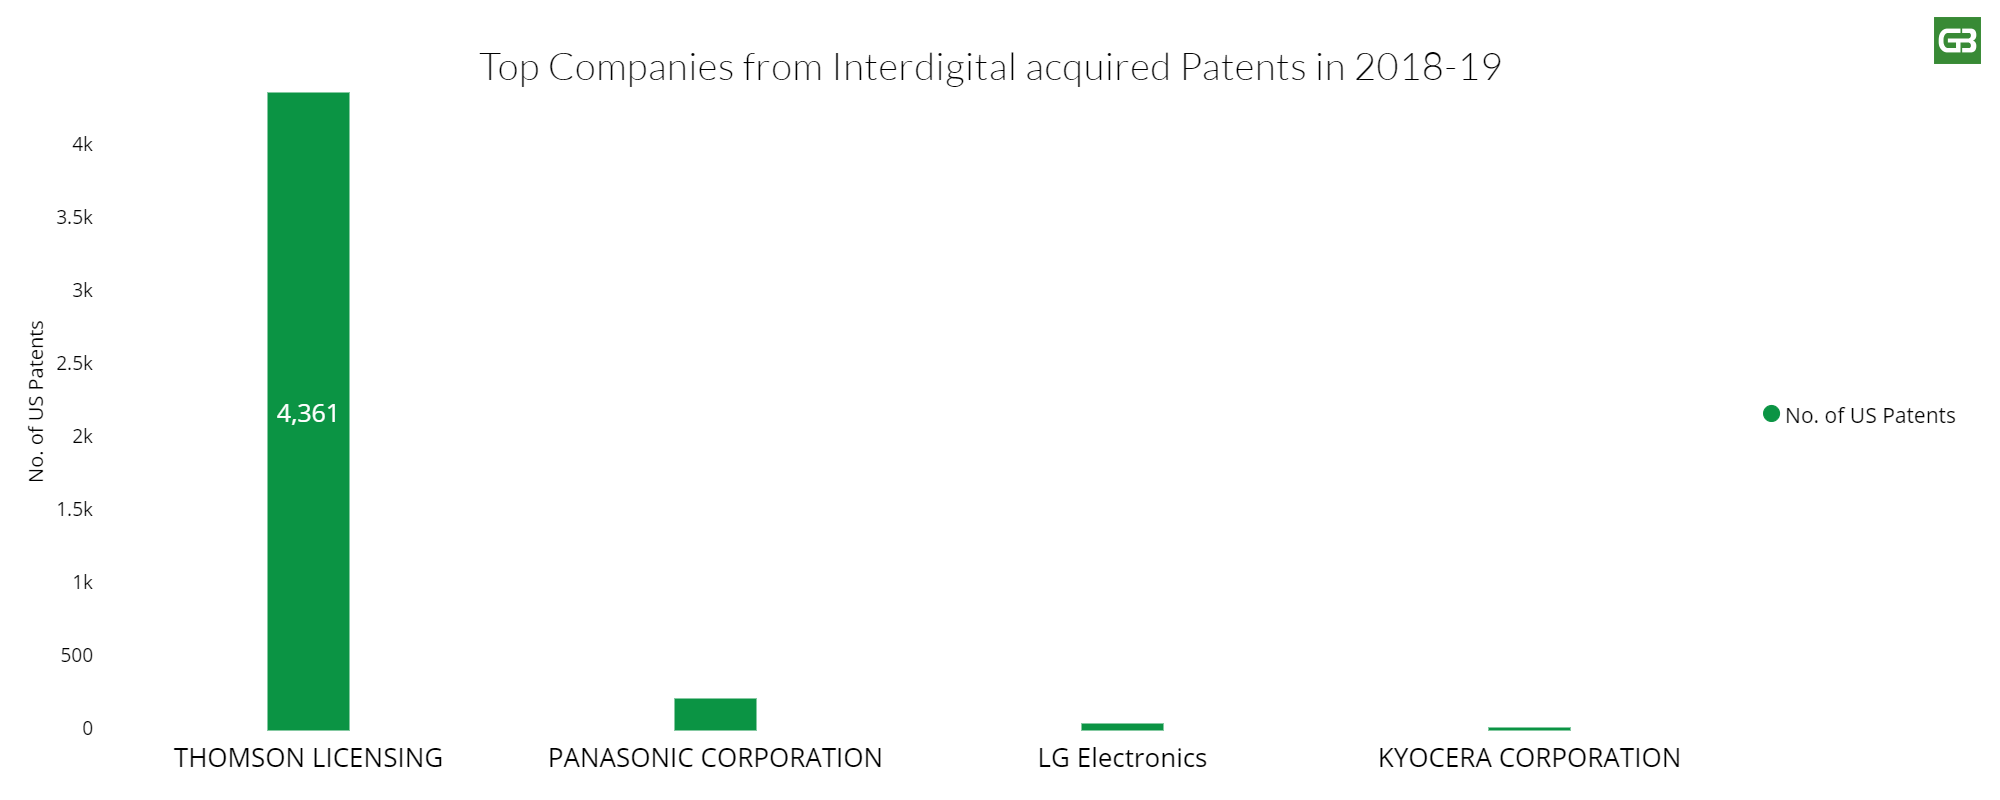 Companies from interdigital acquired patents